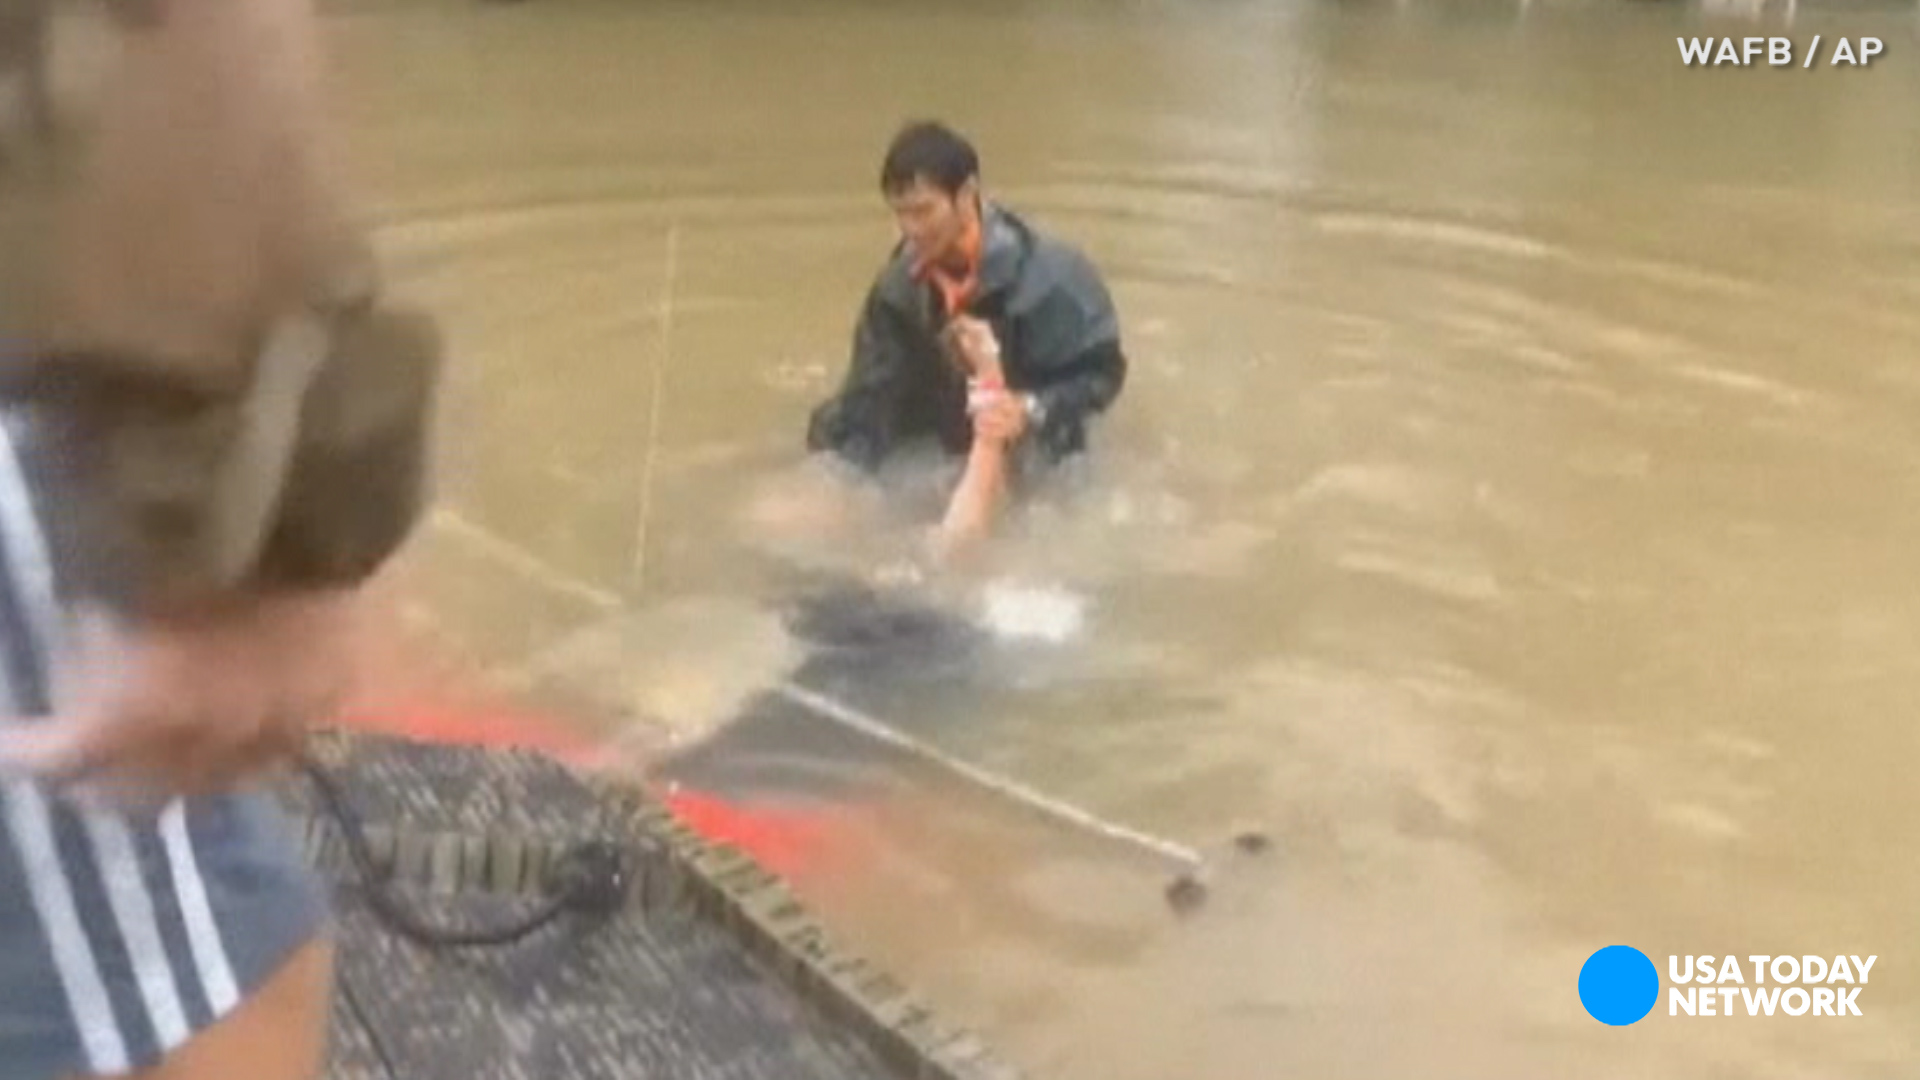 See rescue of woman and dog from car sinking in flood